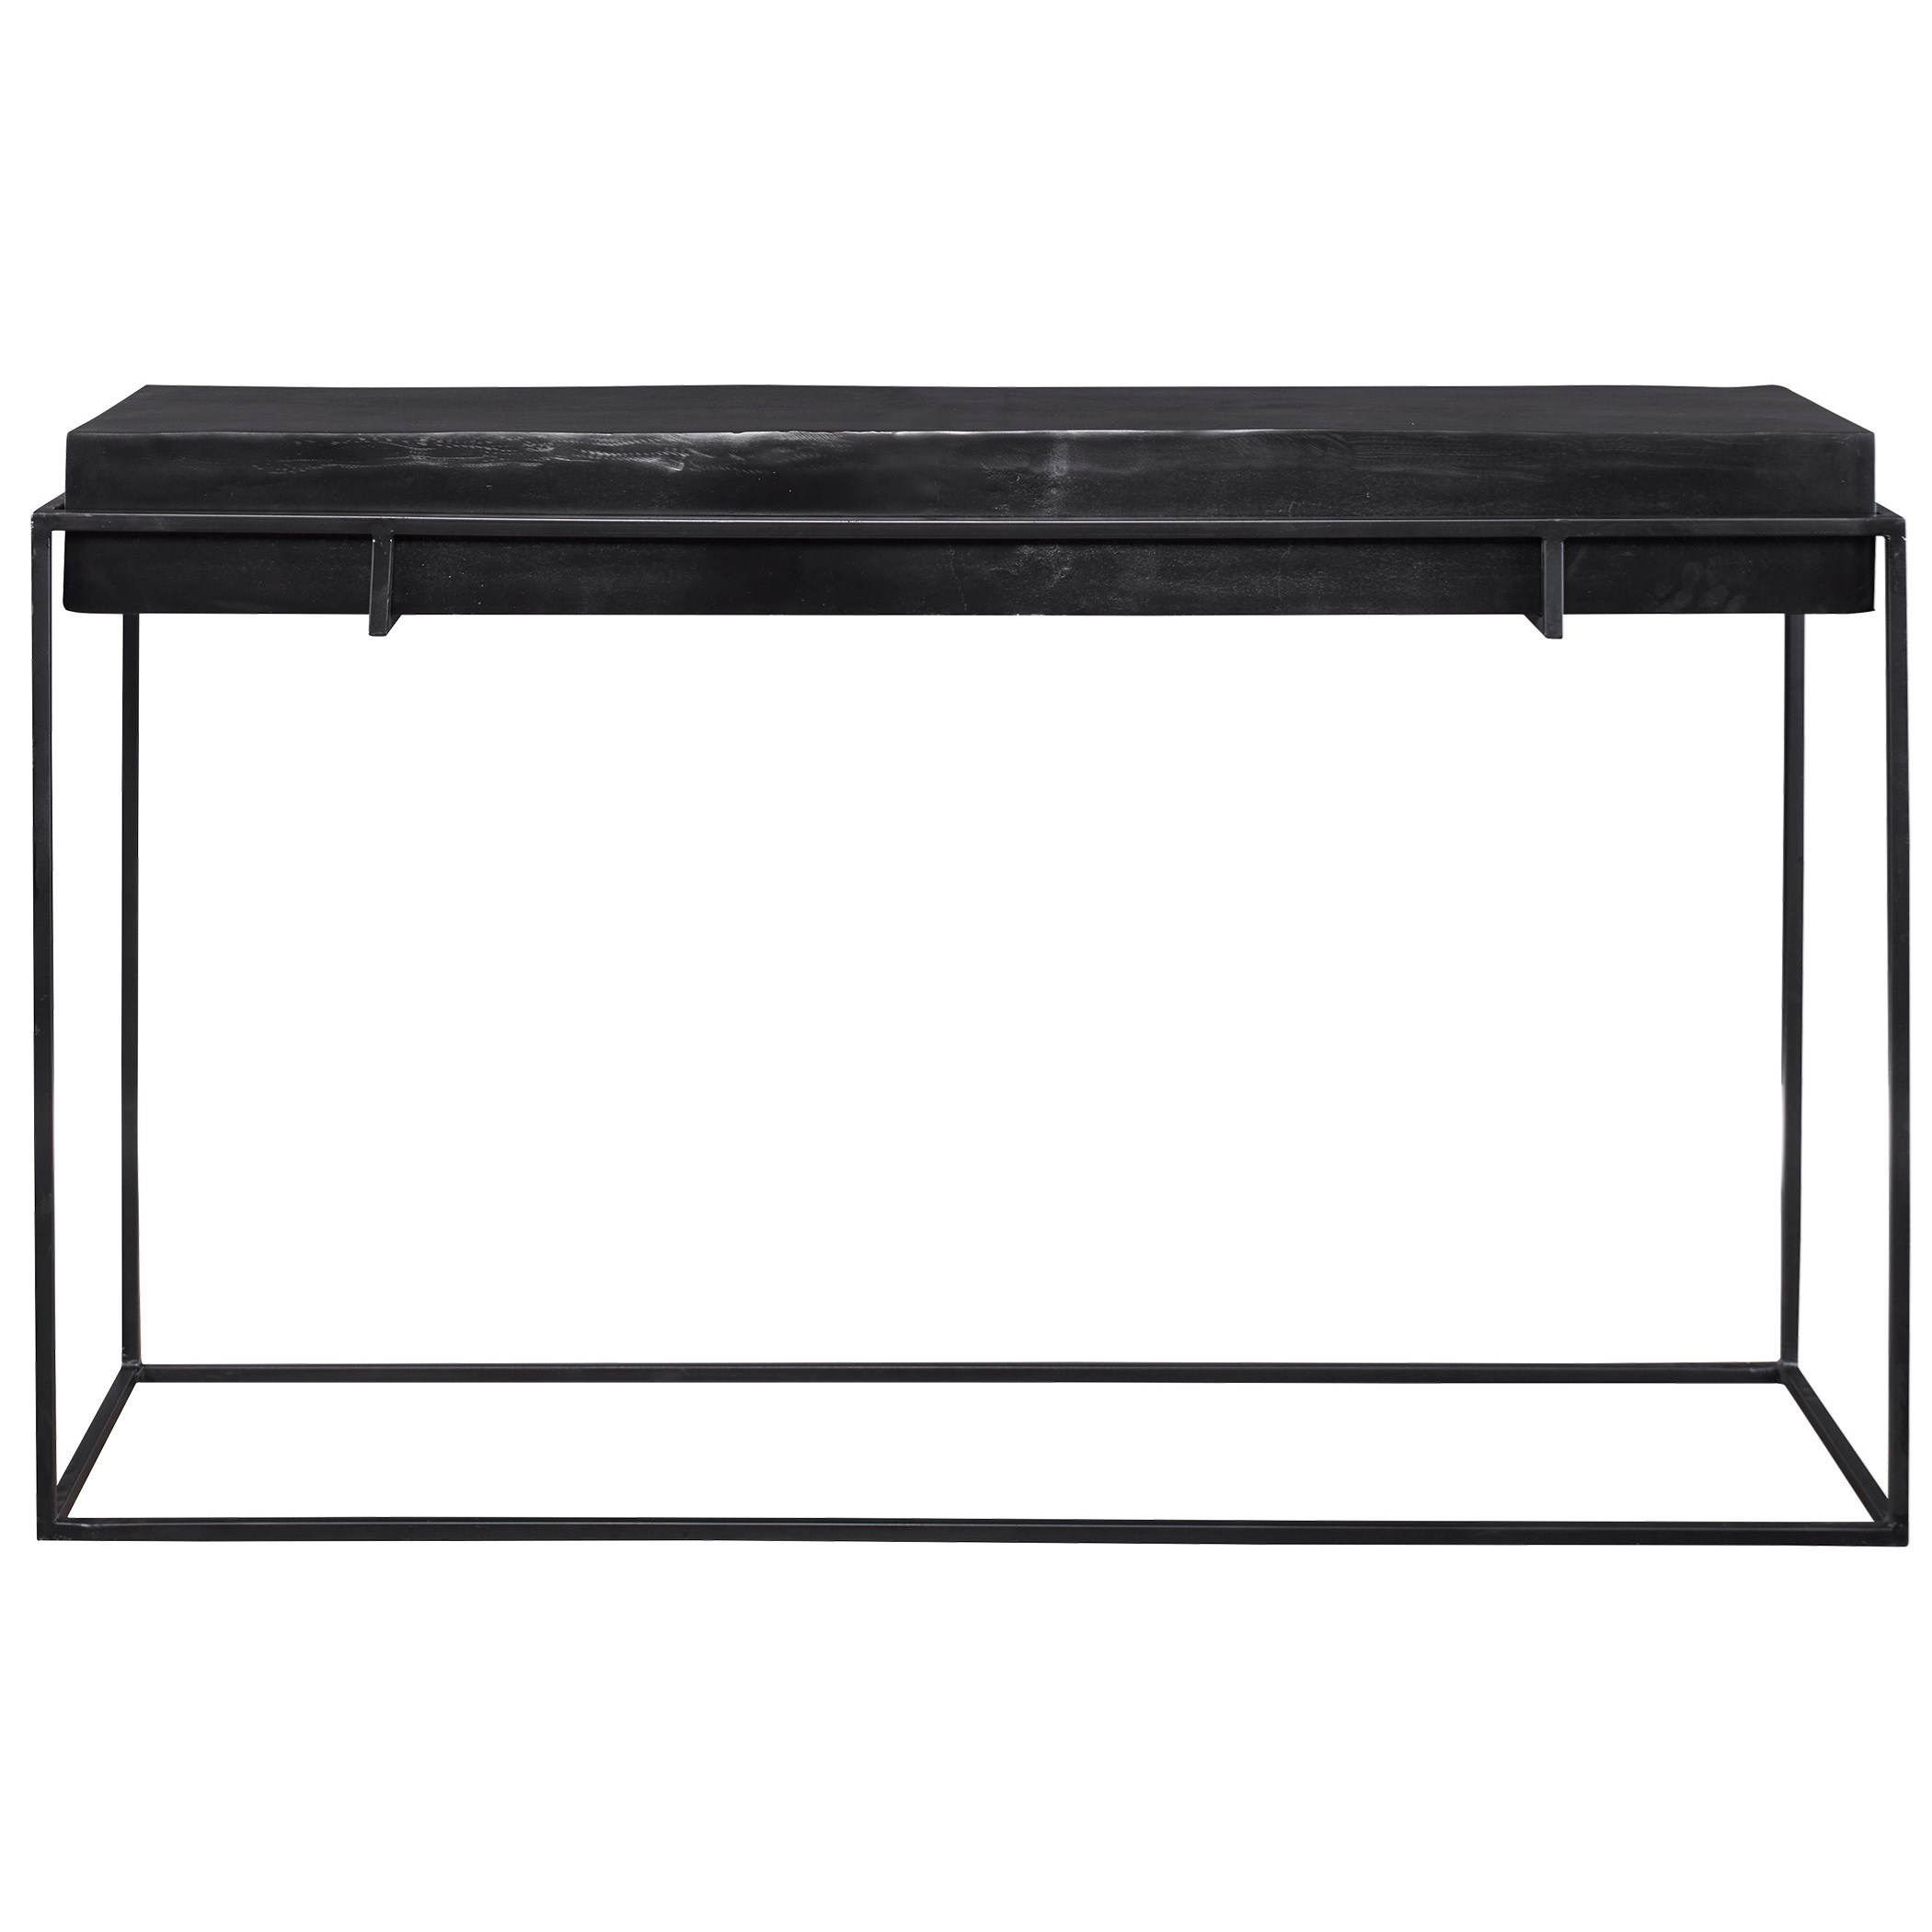 Accent Furniture - Occasional Tables Telone Modern Black Console Table by Uttermost at Jacksonville Furniture Mart